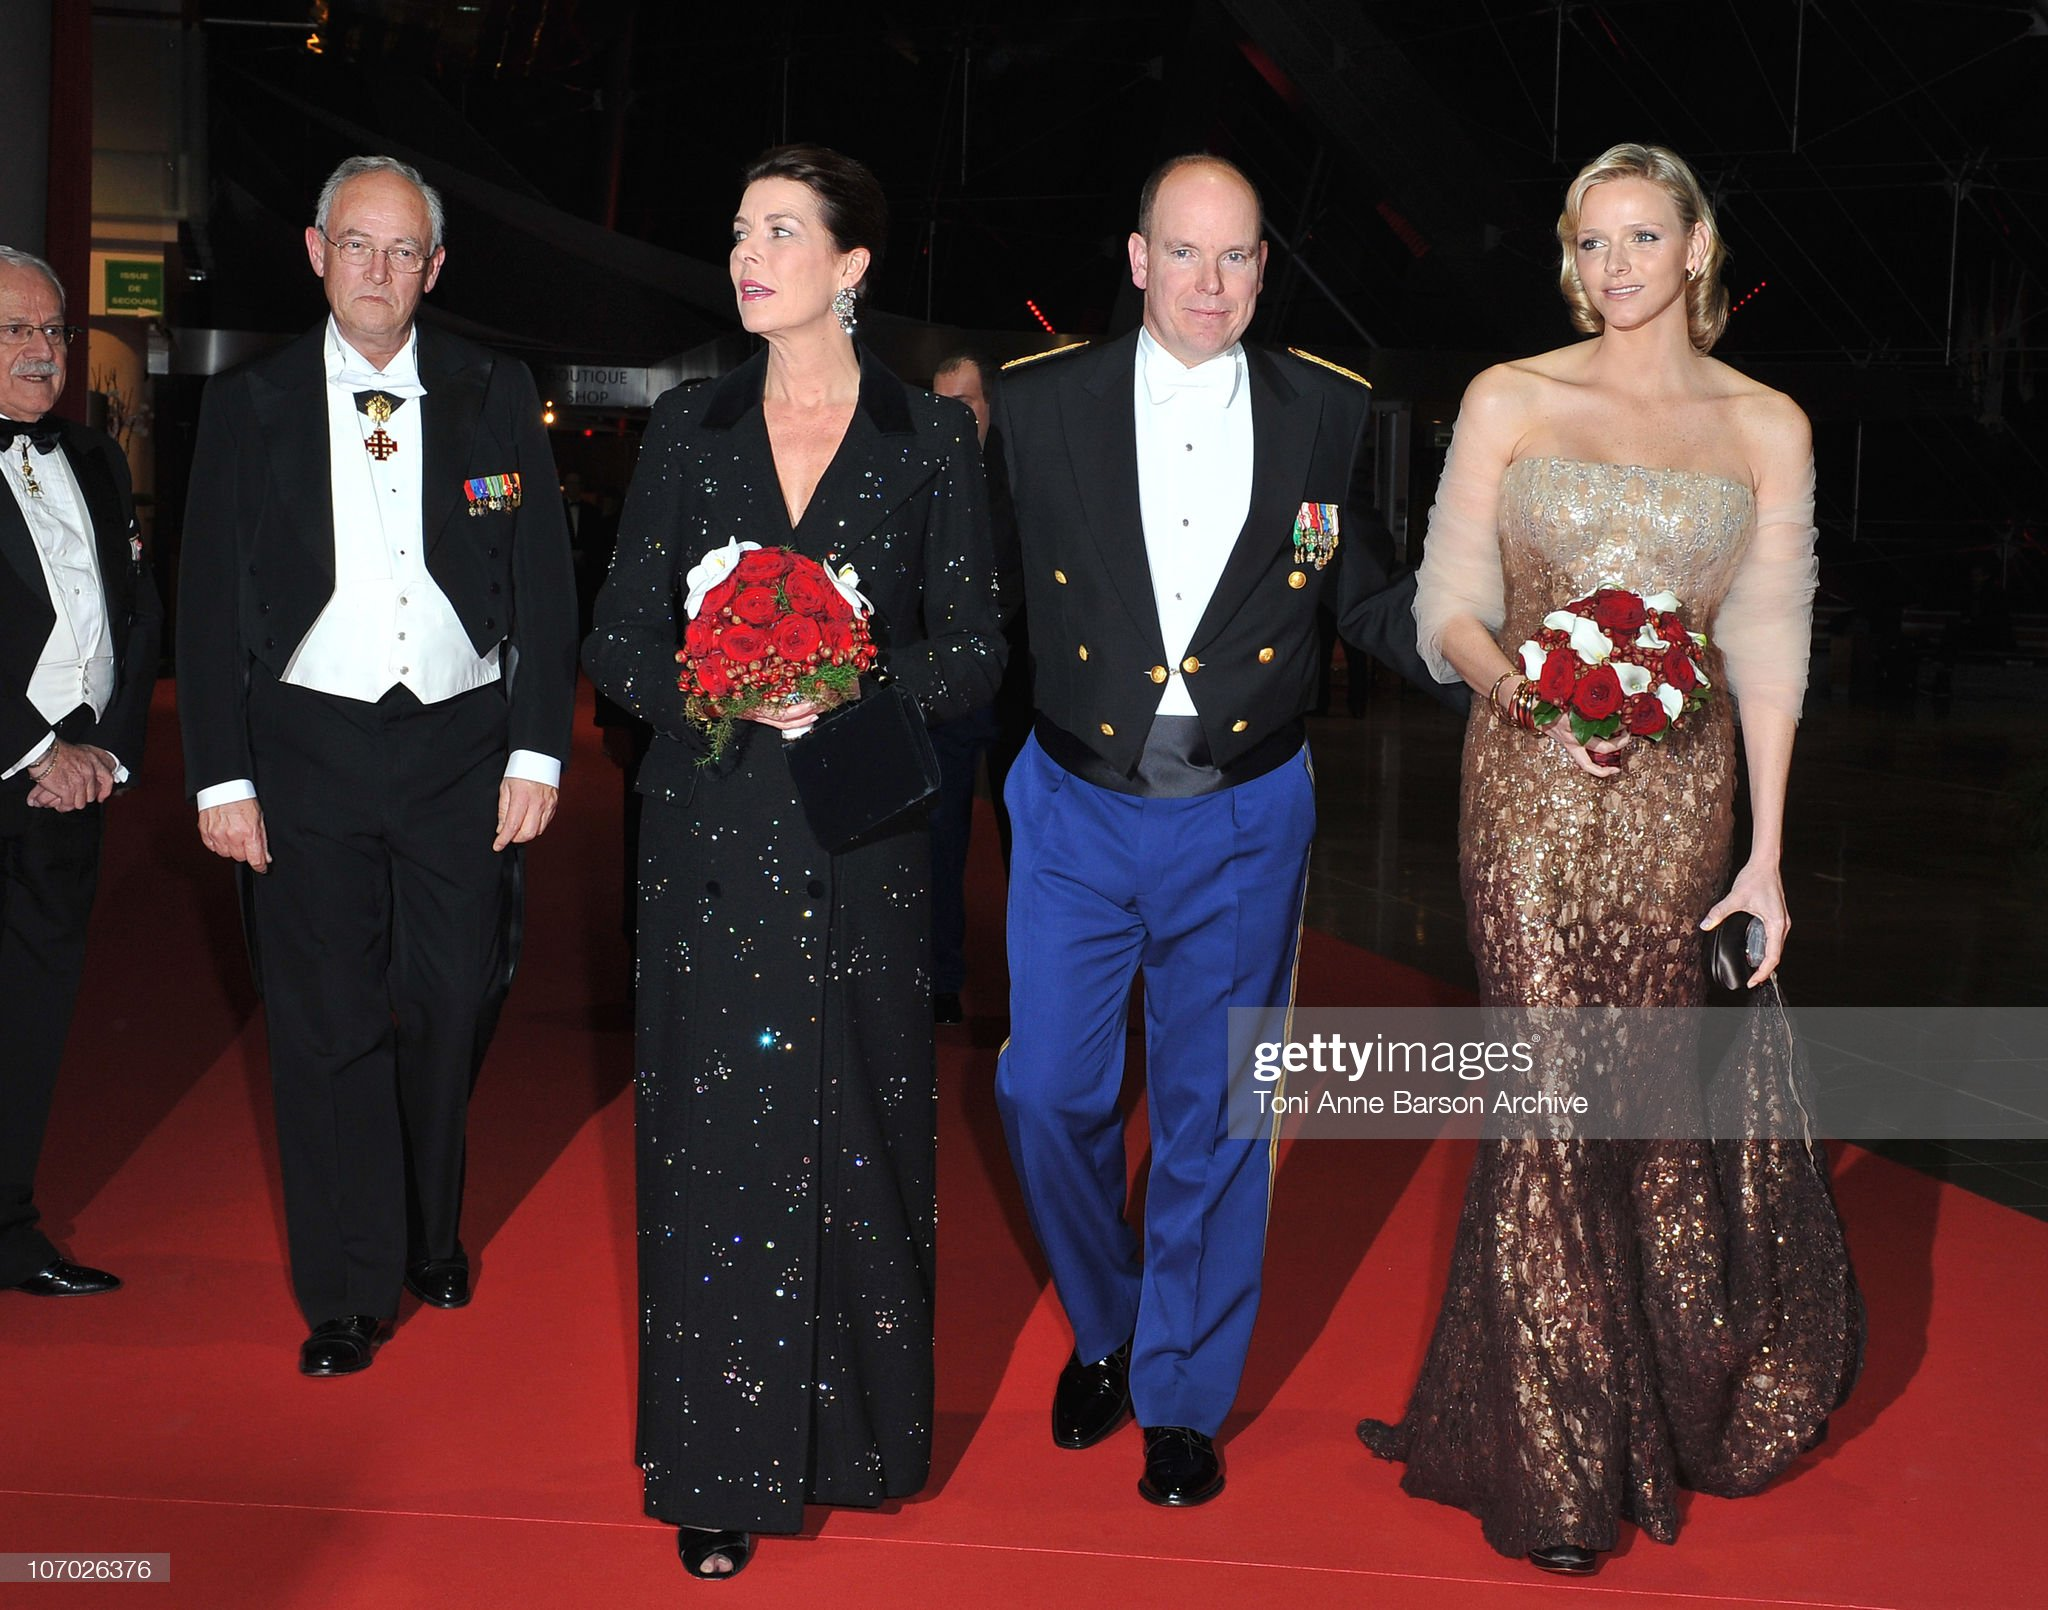 Monaco National Day 2010 - Gala Concert Arrivals : News Photo